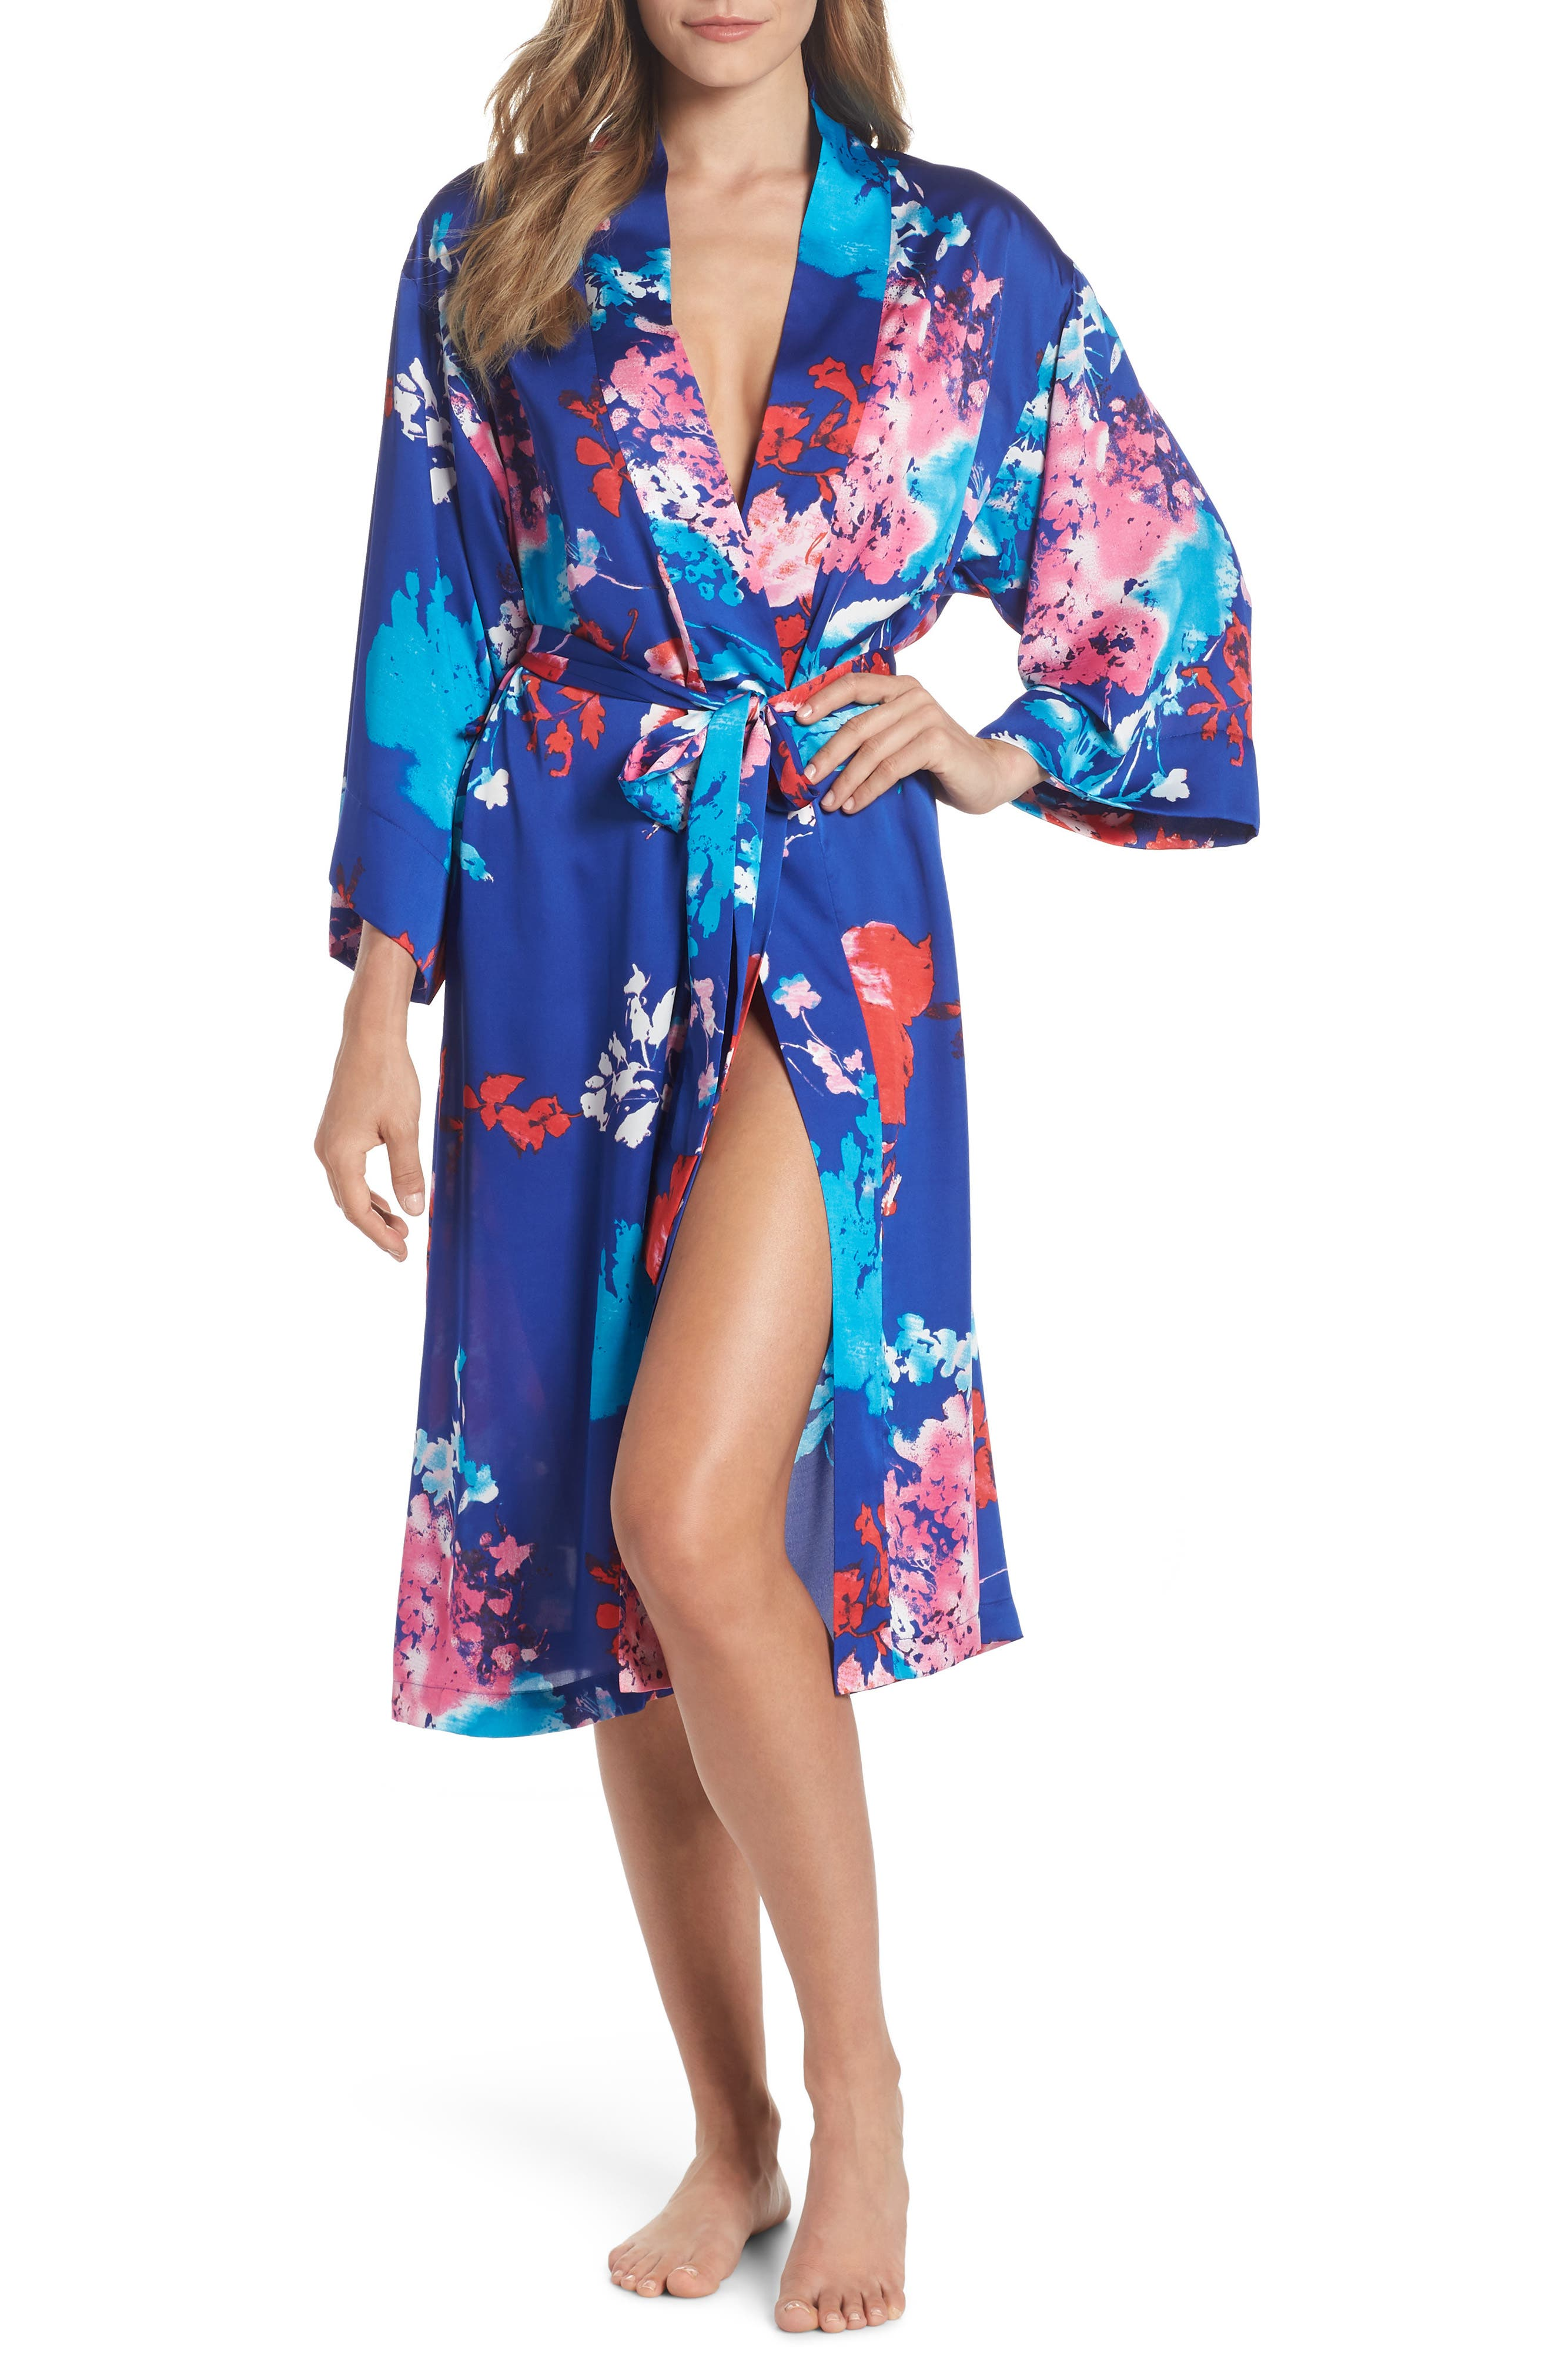 Fiji Robe,                             Main thumbnail 1, color,                             Cob Cobalt